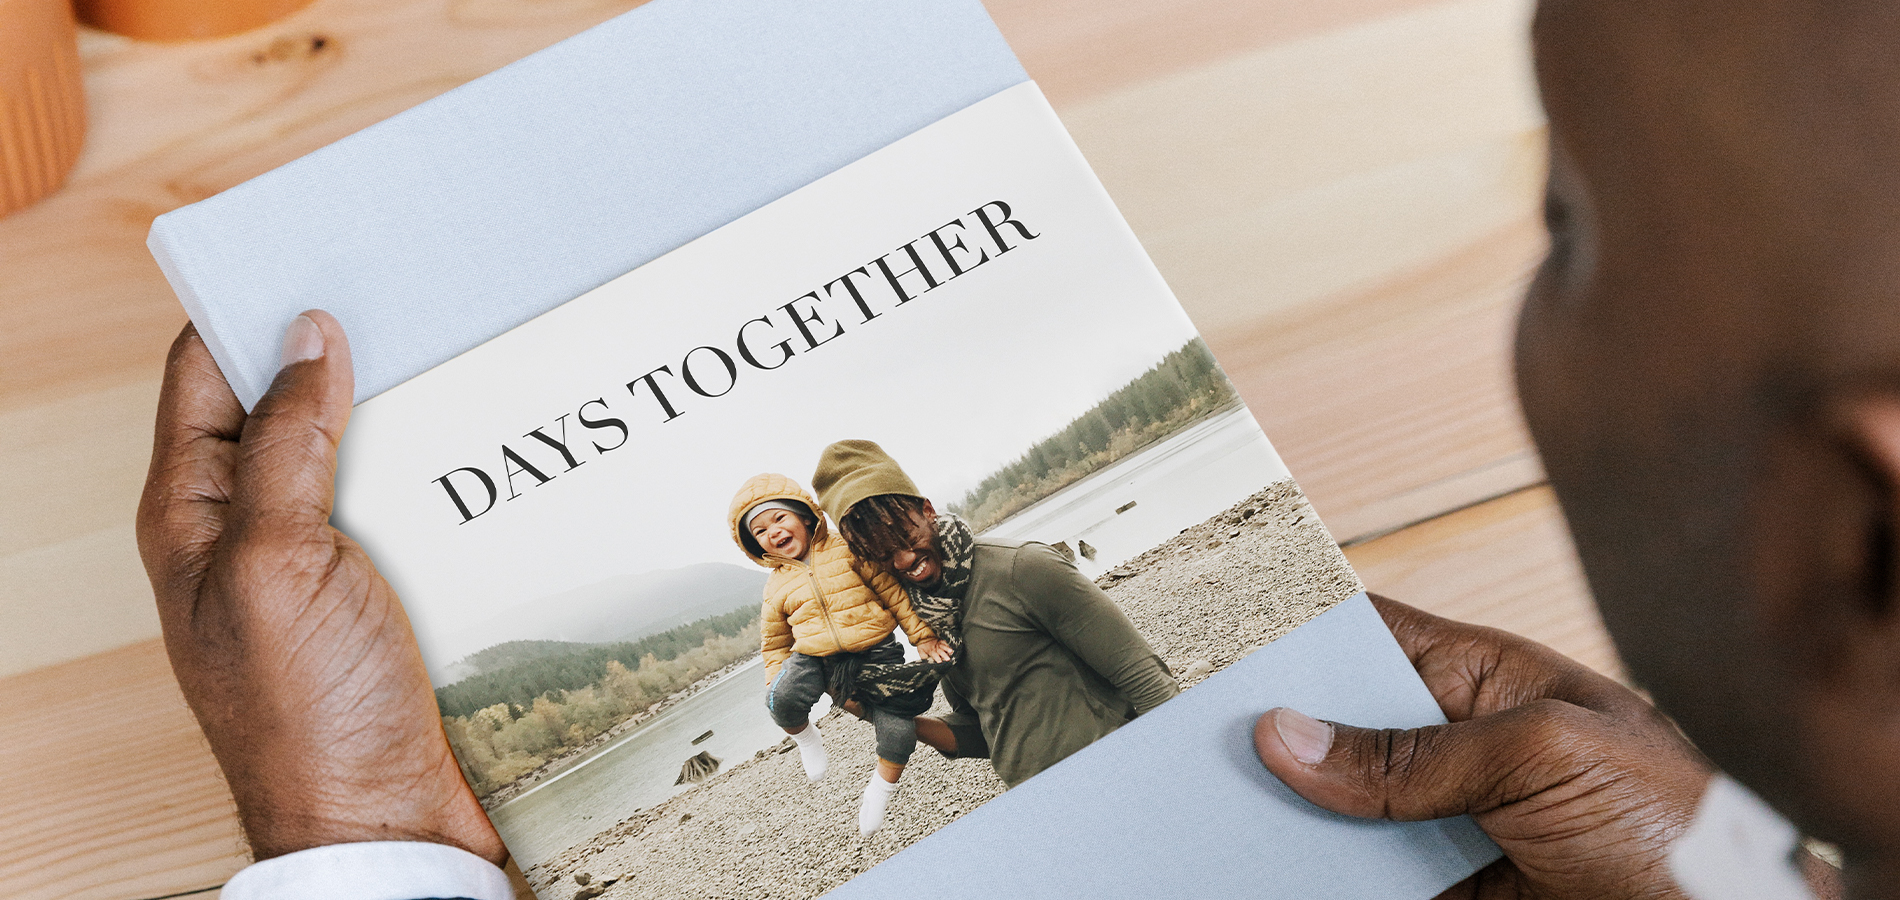 100 Photo Album Title Ideas To Give It The Perfect Name